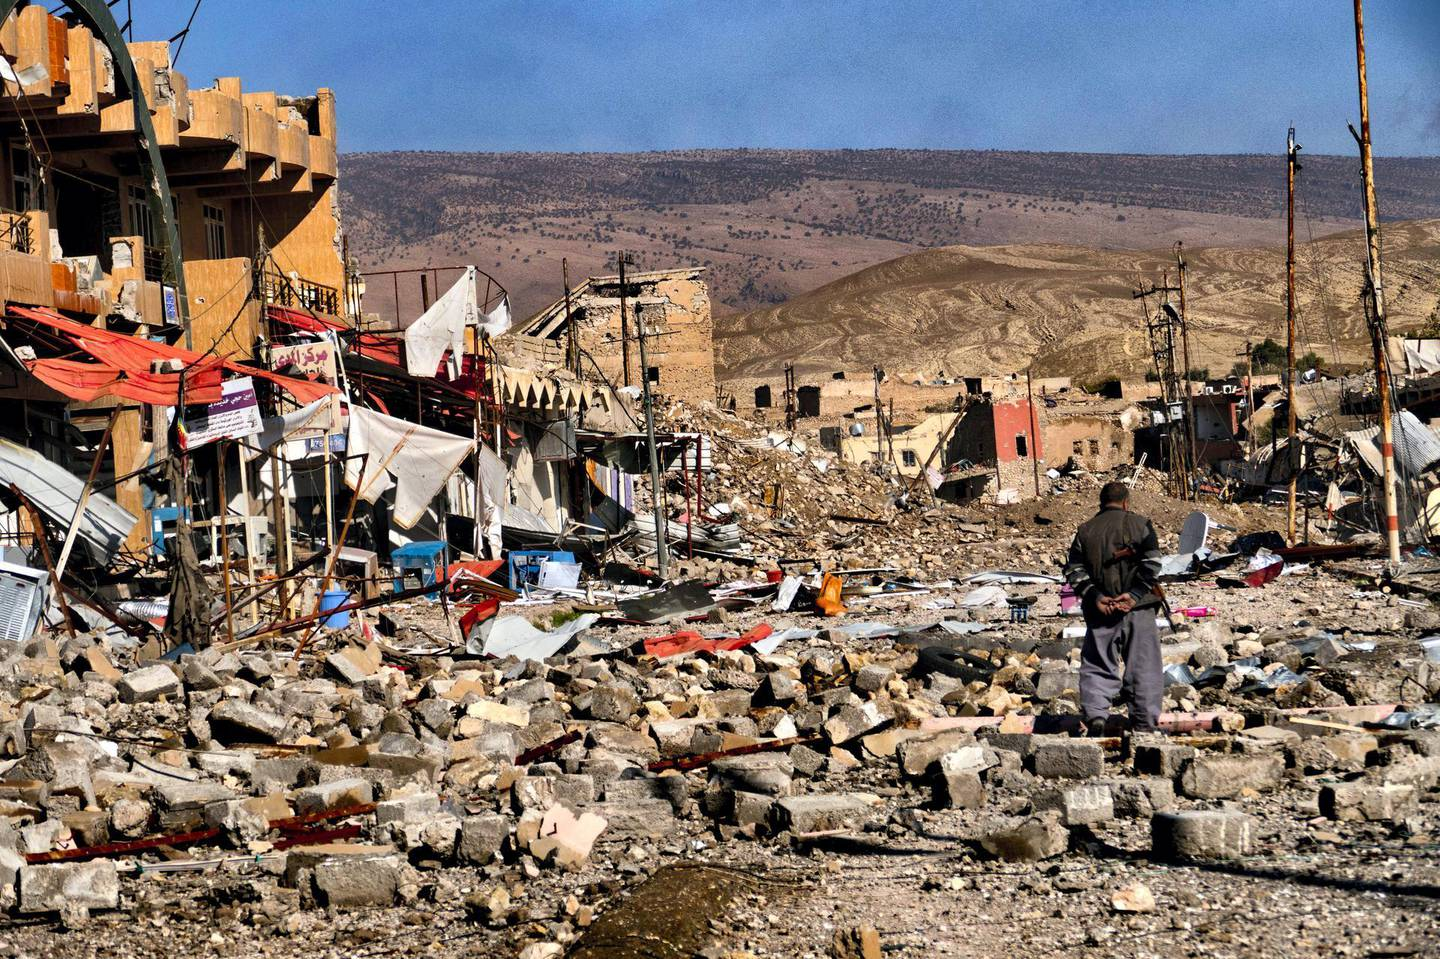 """SINJAR, REGIONAL GOVERNMENT OF KURDISTAN, IRAQ - 2015: A civilian walks among the ruins of the devastated town of Sinjar, after its liberation.  The town was liberated from ISIS on November 13th, 2015 by the Peshmerga forces of Iraqi Kurdistan. The Kurdish word """"Peshmerga"""" is used to refer to those who are part of Iraqi Kurdistan's armed forces. It means """"u201cone who confronts death,"""" or """"will fight to the death.""""u201d The capture of Sinjar by the Islamic State on August 3rd, 2014 was very violent. Over 35,000 Yazidi Kurd inhabitants attempted to flee into the nearby mountains. Those who could not escape were killed and the Yazidi women abducted by ISIS were sold or used as sex slaves. (Photo by Reza/Getty Images)"""